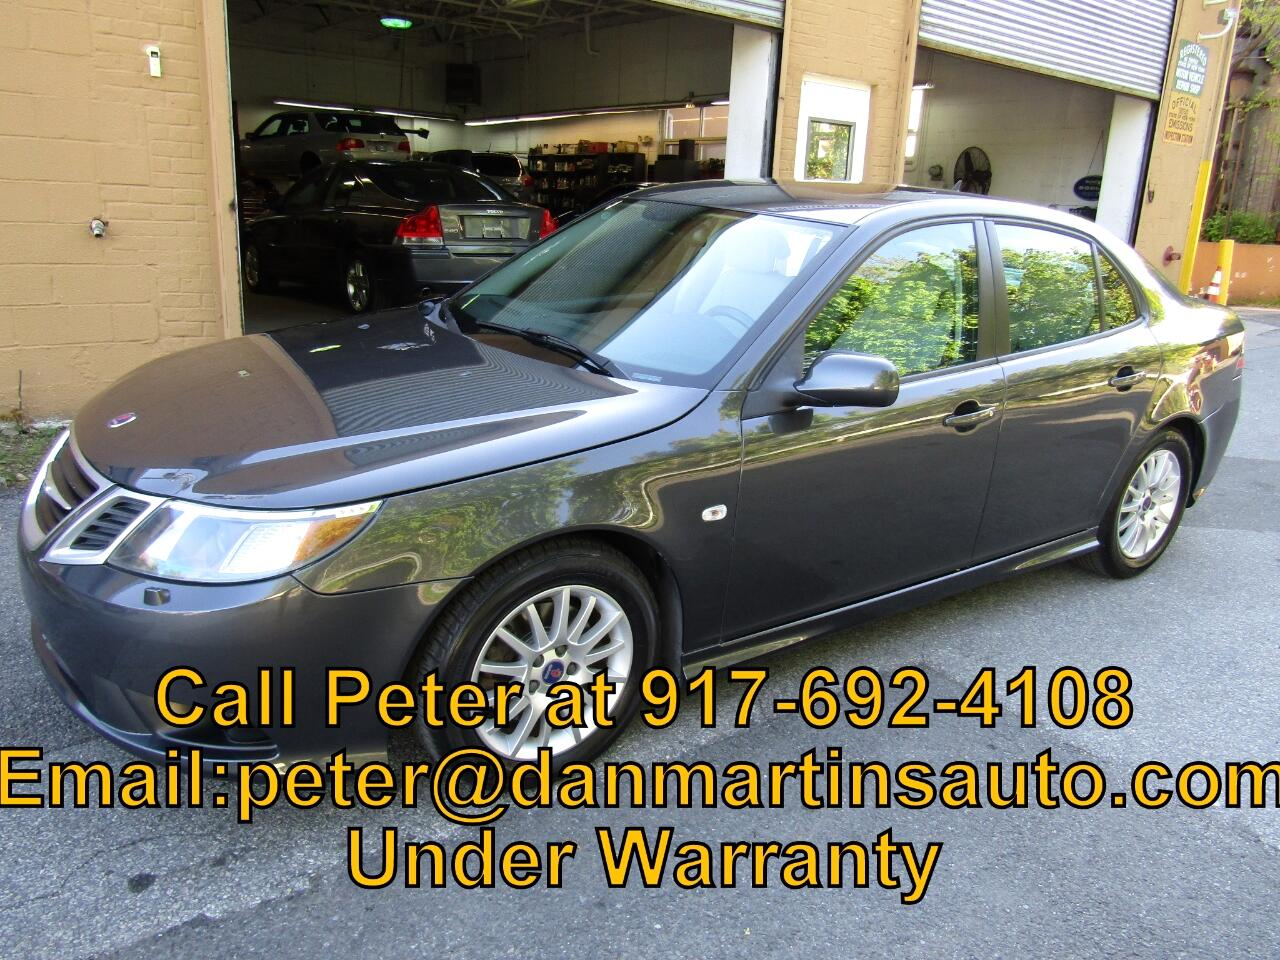 Saab 9-3 4dr Sdn Manual FWD 2011